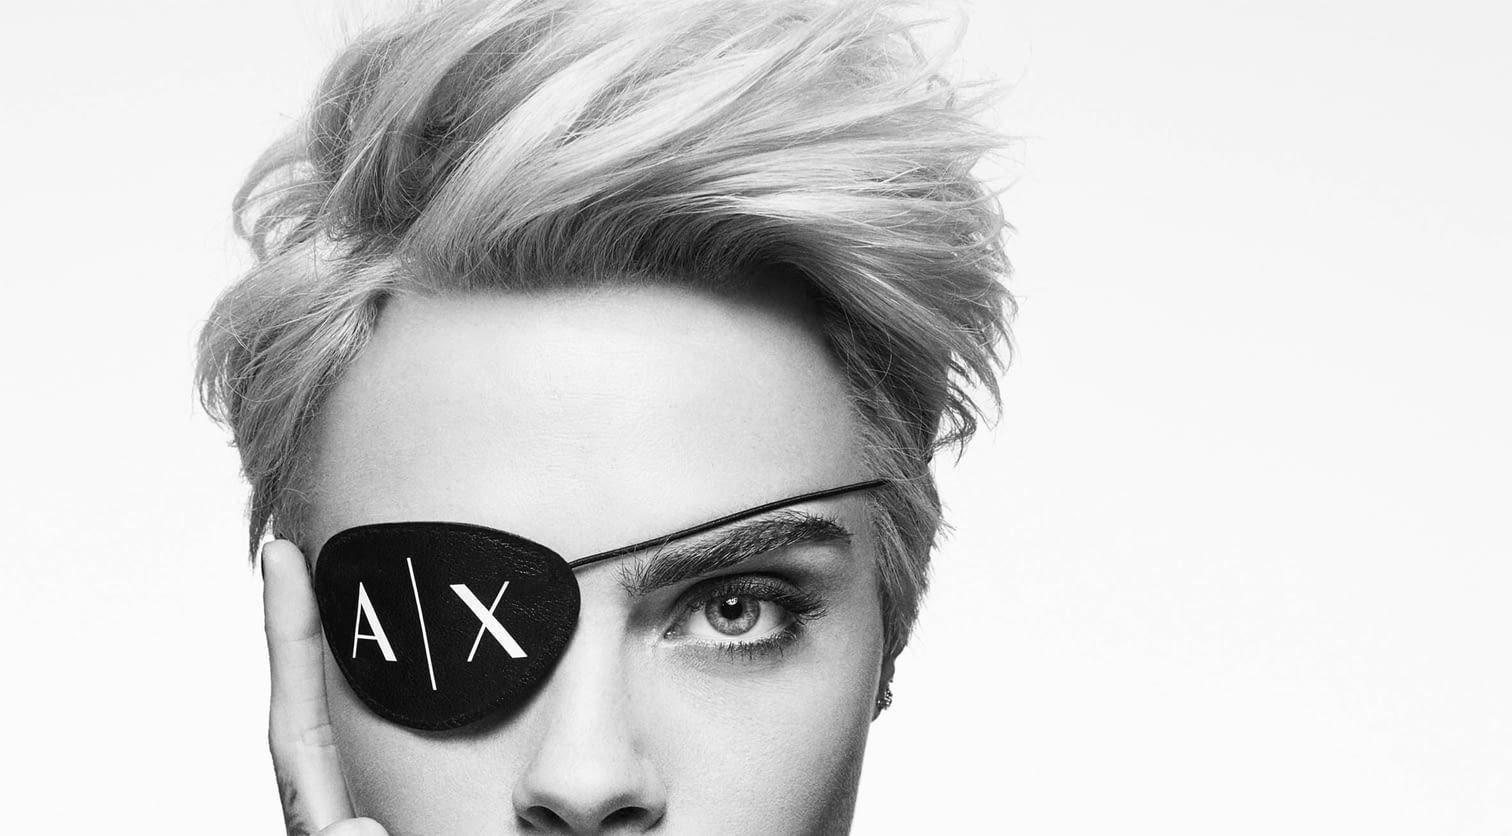 CARA DELEVINGNE, MARTIN GARRIX AND LI YIFENG FRONT THE NEW AX ARMANI EXCHANGE FW 1718 ADVERTISING CAMPAIGN (2).jpg